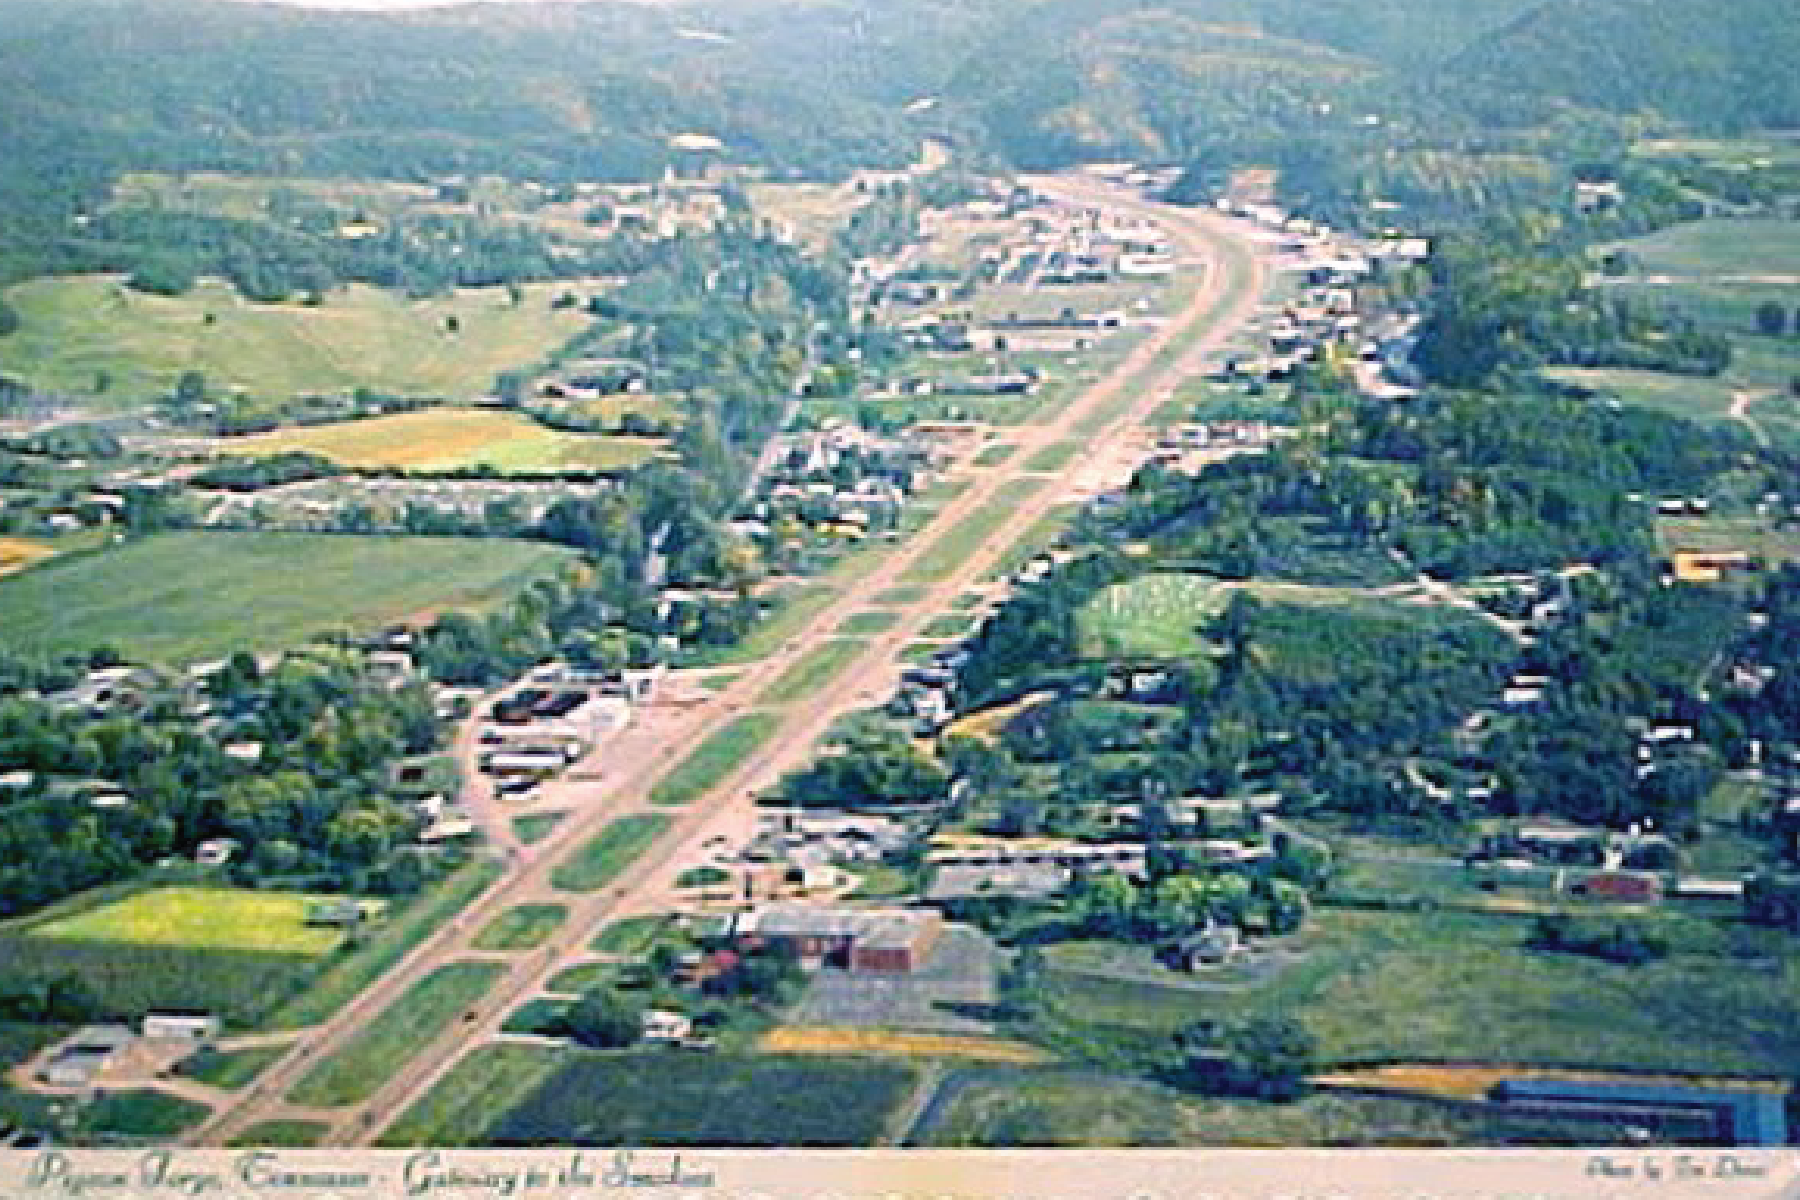 Aerial photograph of Pigeon Forge, Tennessee.